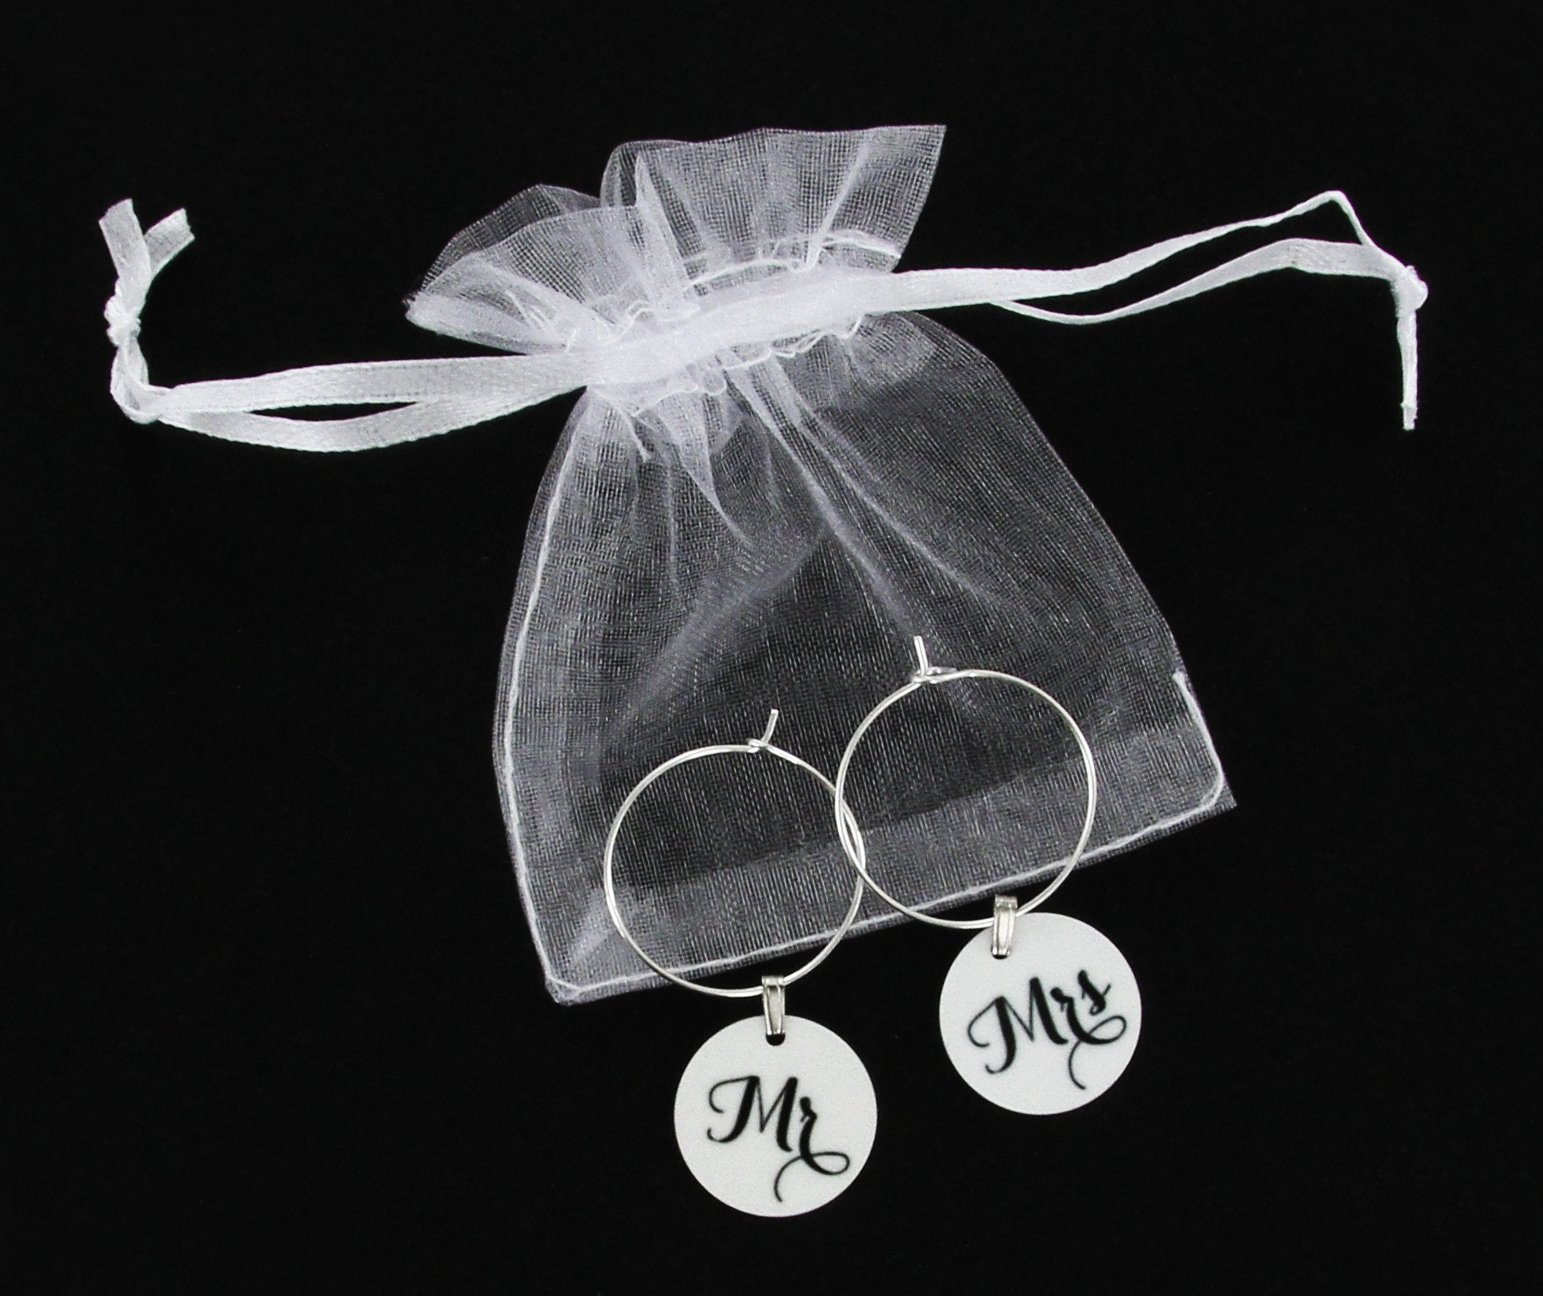 TJ Formal Wine Charms Wedding Gift - Mr. and Mrs. Set - Rings Hoops Tags Shower Favors by TJ Formal (Image #4)